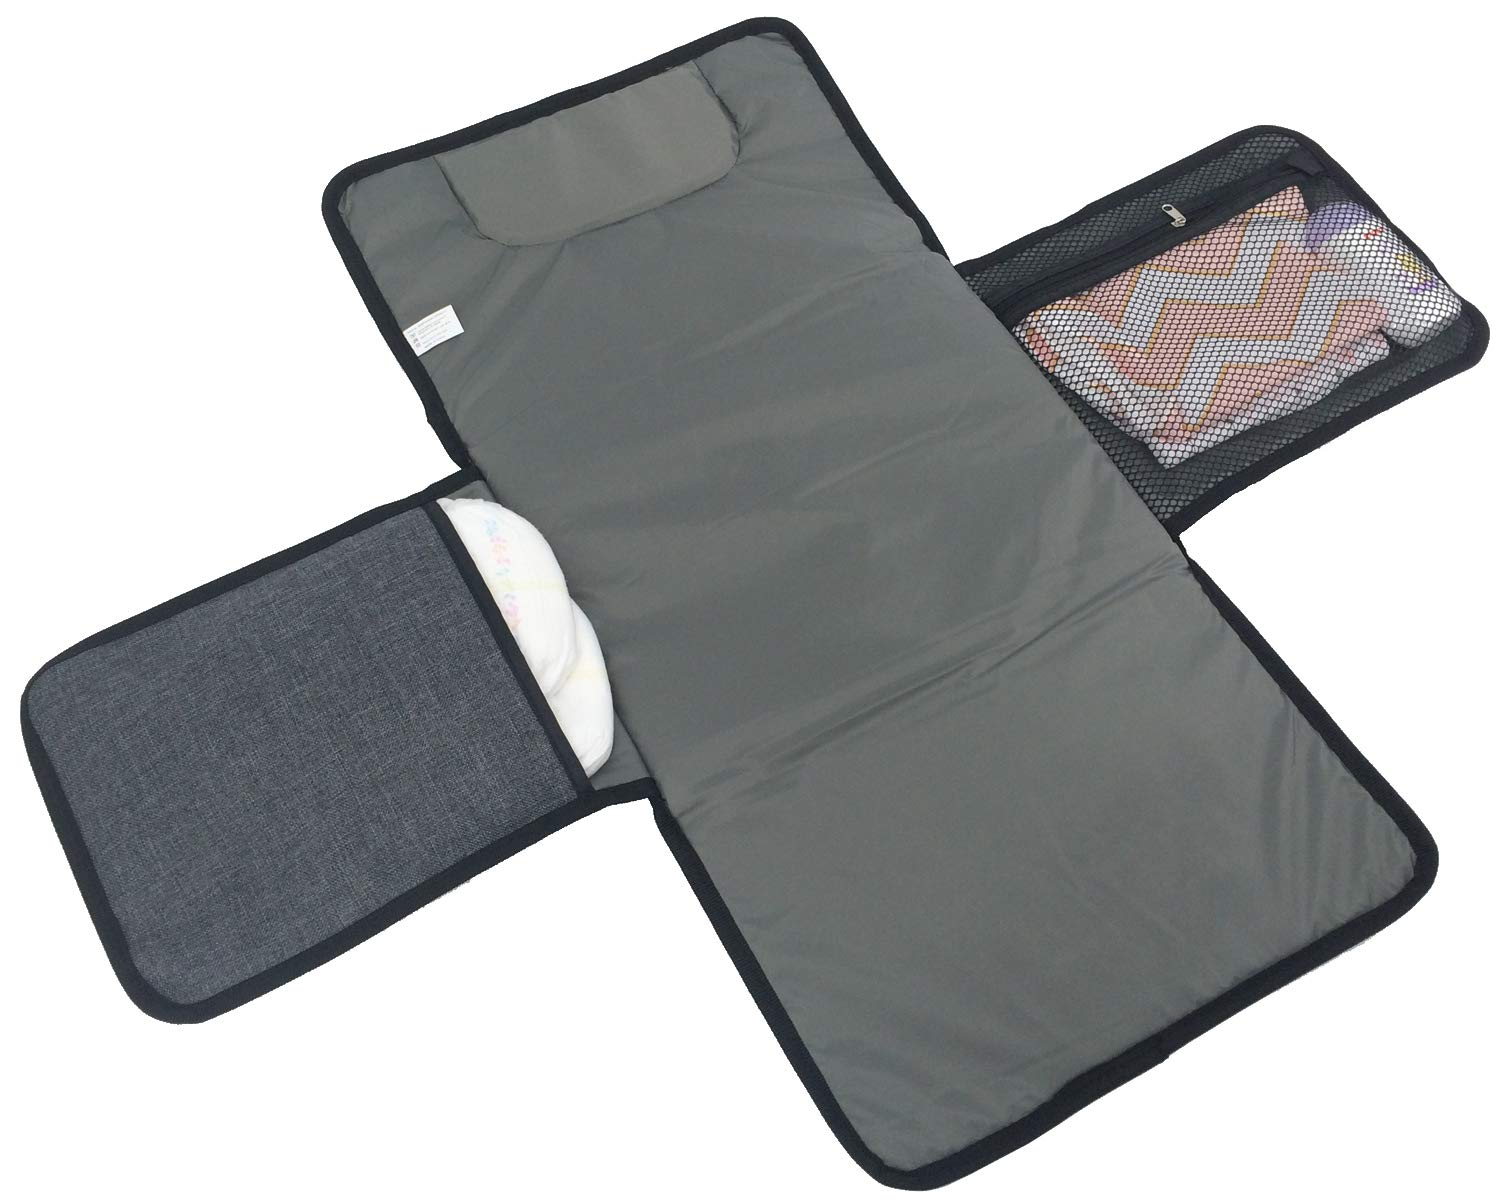 Baby Changing Pad Portable Travel Station Kit for Infant Diapering - Lightweight and Waterproof Diaper Clutch, Extra Long Mat with Pockets - Padded Head Cushion (Gray) YINTZ